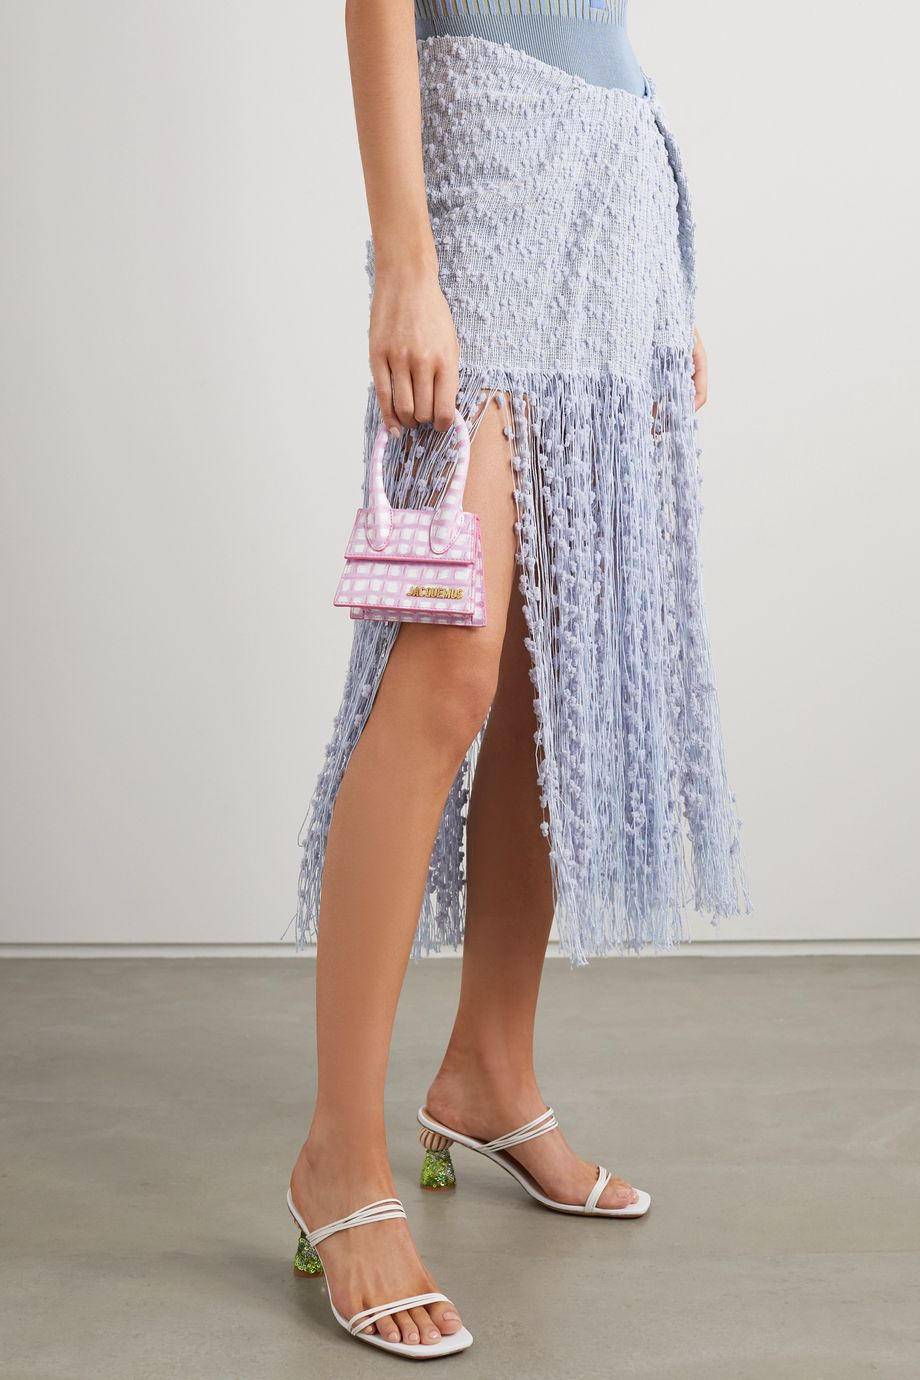 Jacquemus Le Chiquito checked leather tote